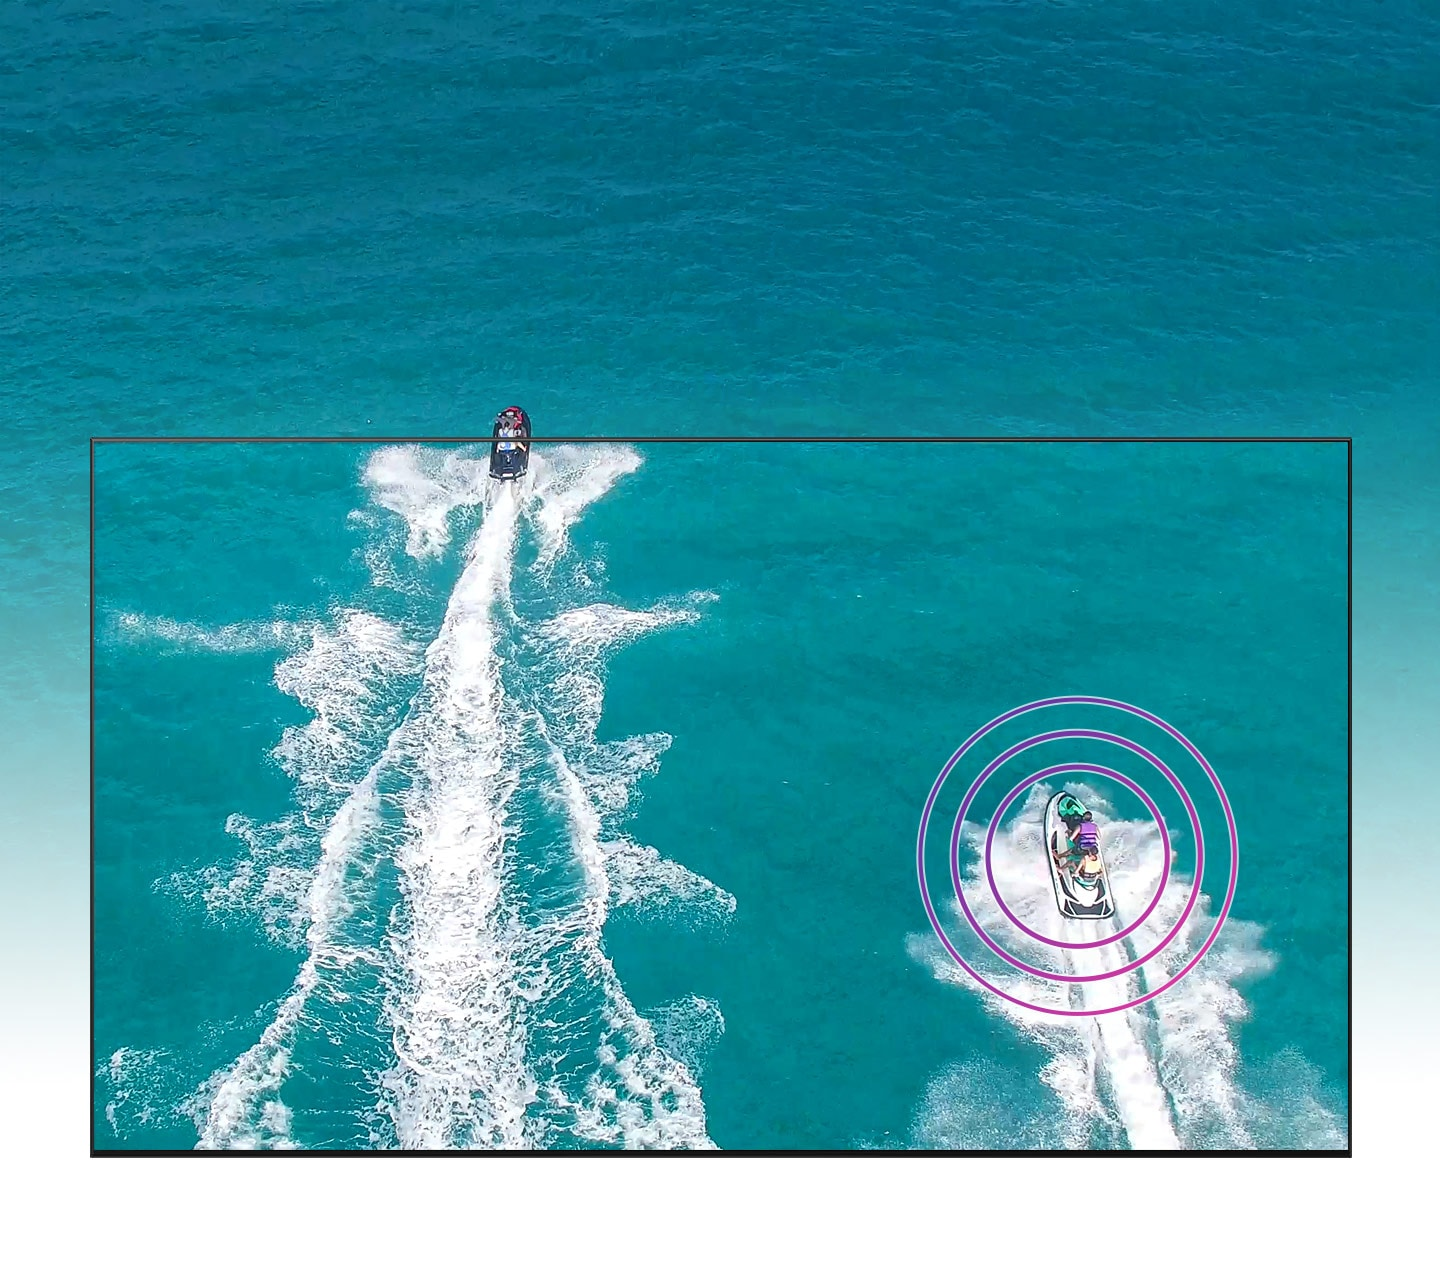 From a bird's eye view, two boats are moving from bottom to top. The boat on the left is already leaving the TV screen, and the boat on the right on the TV screen is marked with a sound.